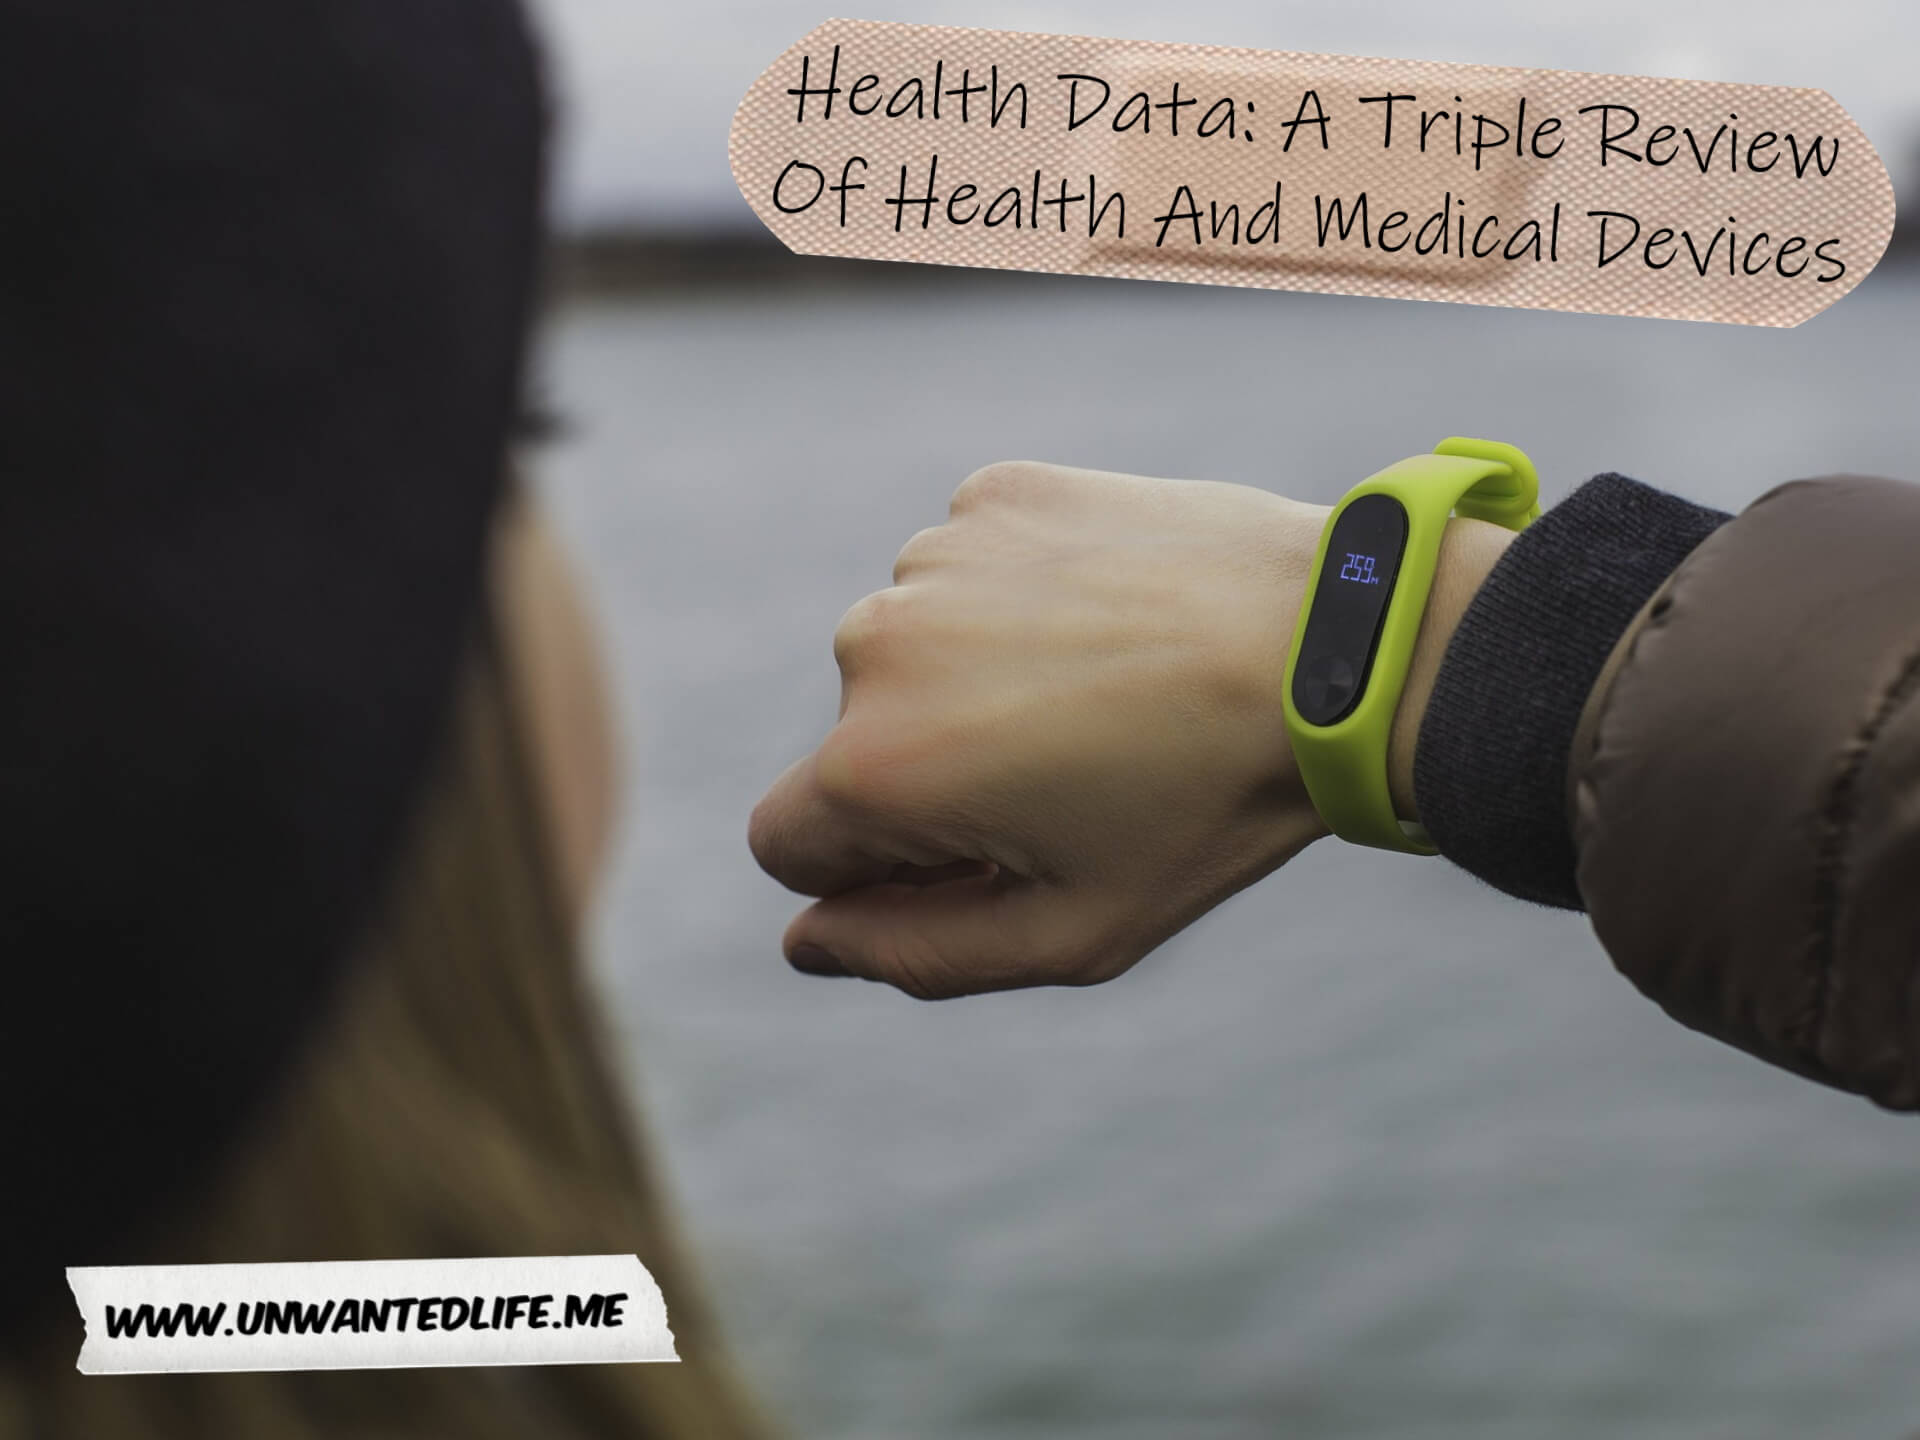 A photo of a white woman wearing a brown puffer jacket and a blag woolly hat, looking at a fitness tracker watch. The image represents the topic of the article - Health Data: A Triple Review Of Health And Medical Devices